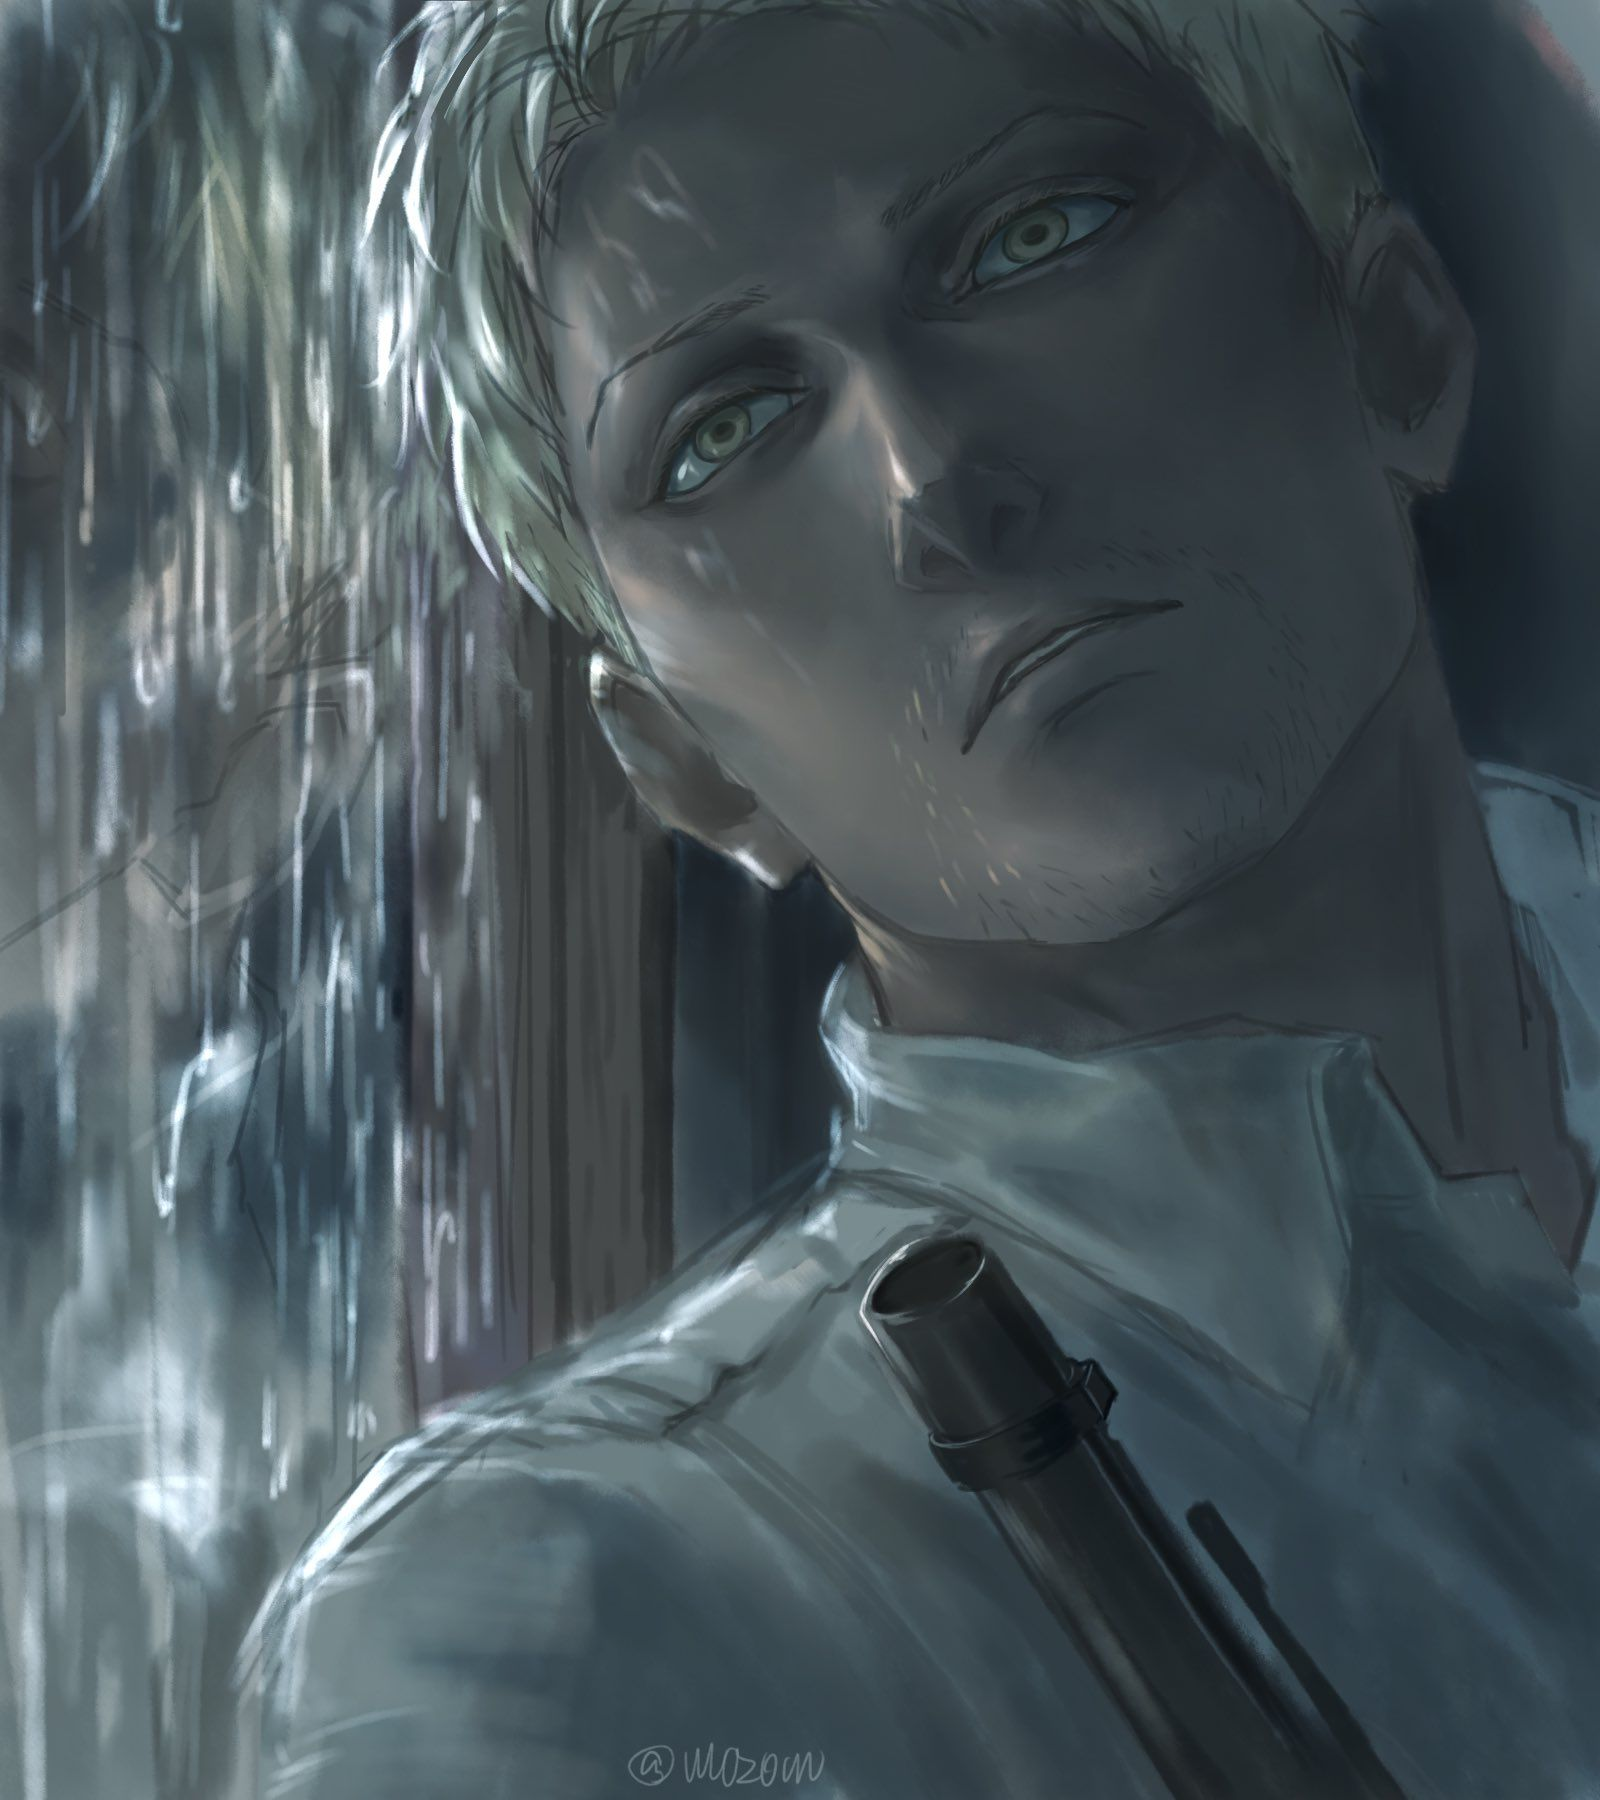 (3) 貝 (vvv020vvv) / Twitter in 2020 Attack on titan